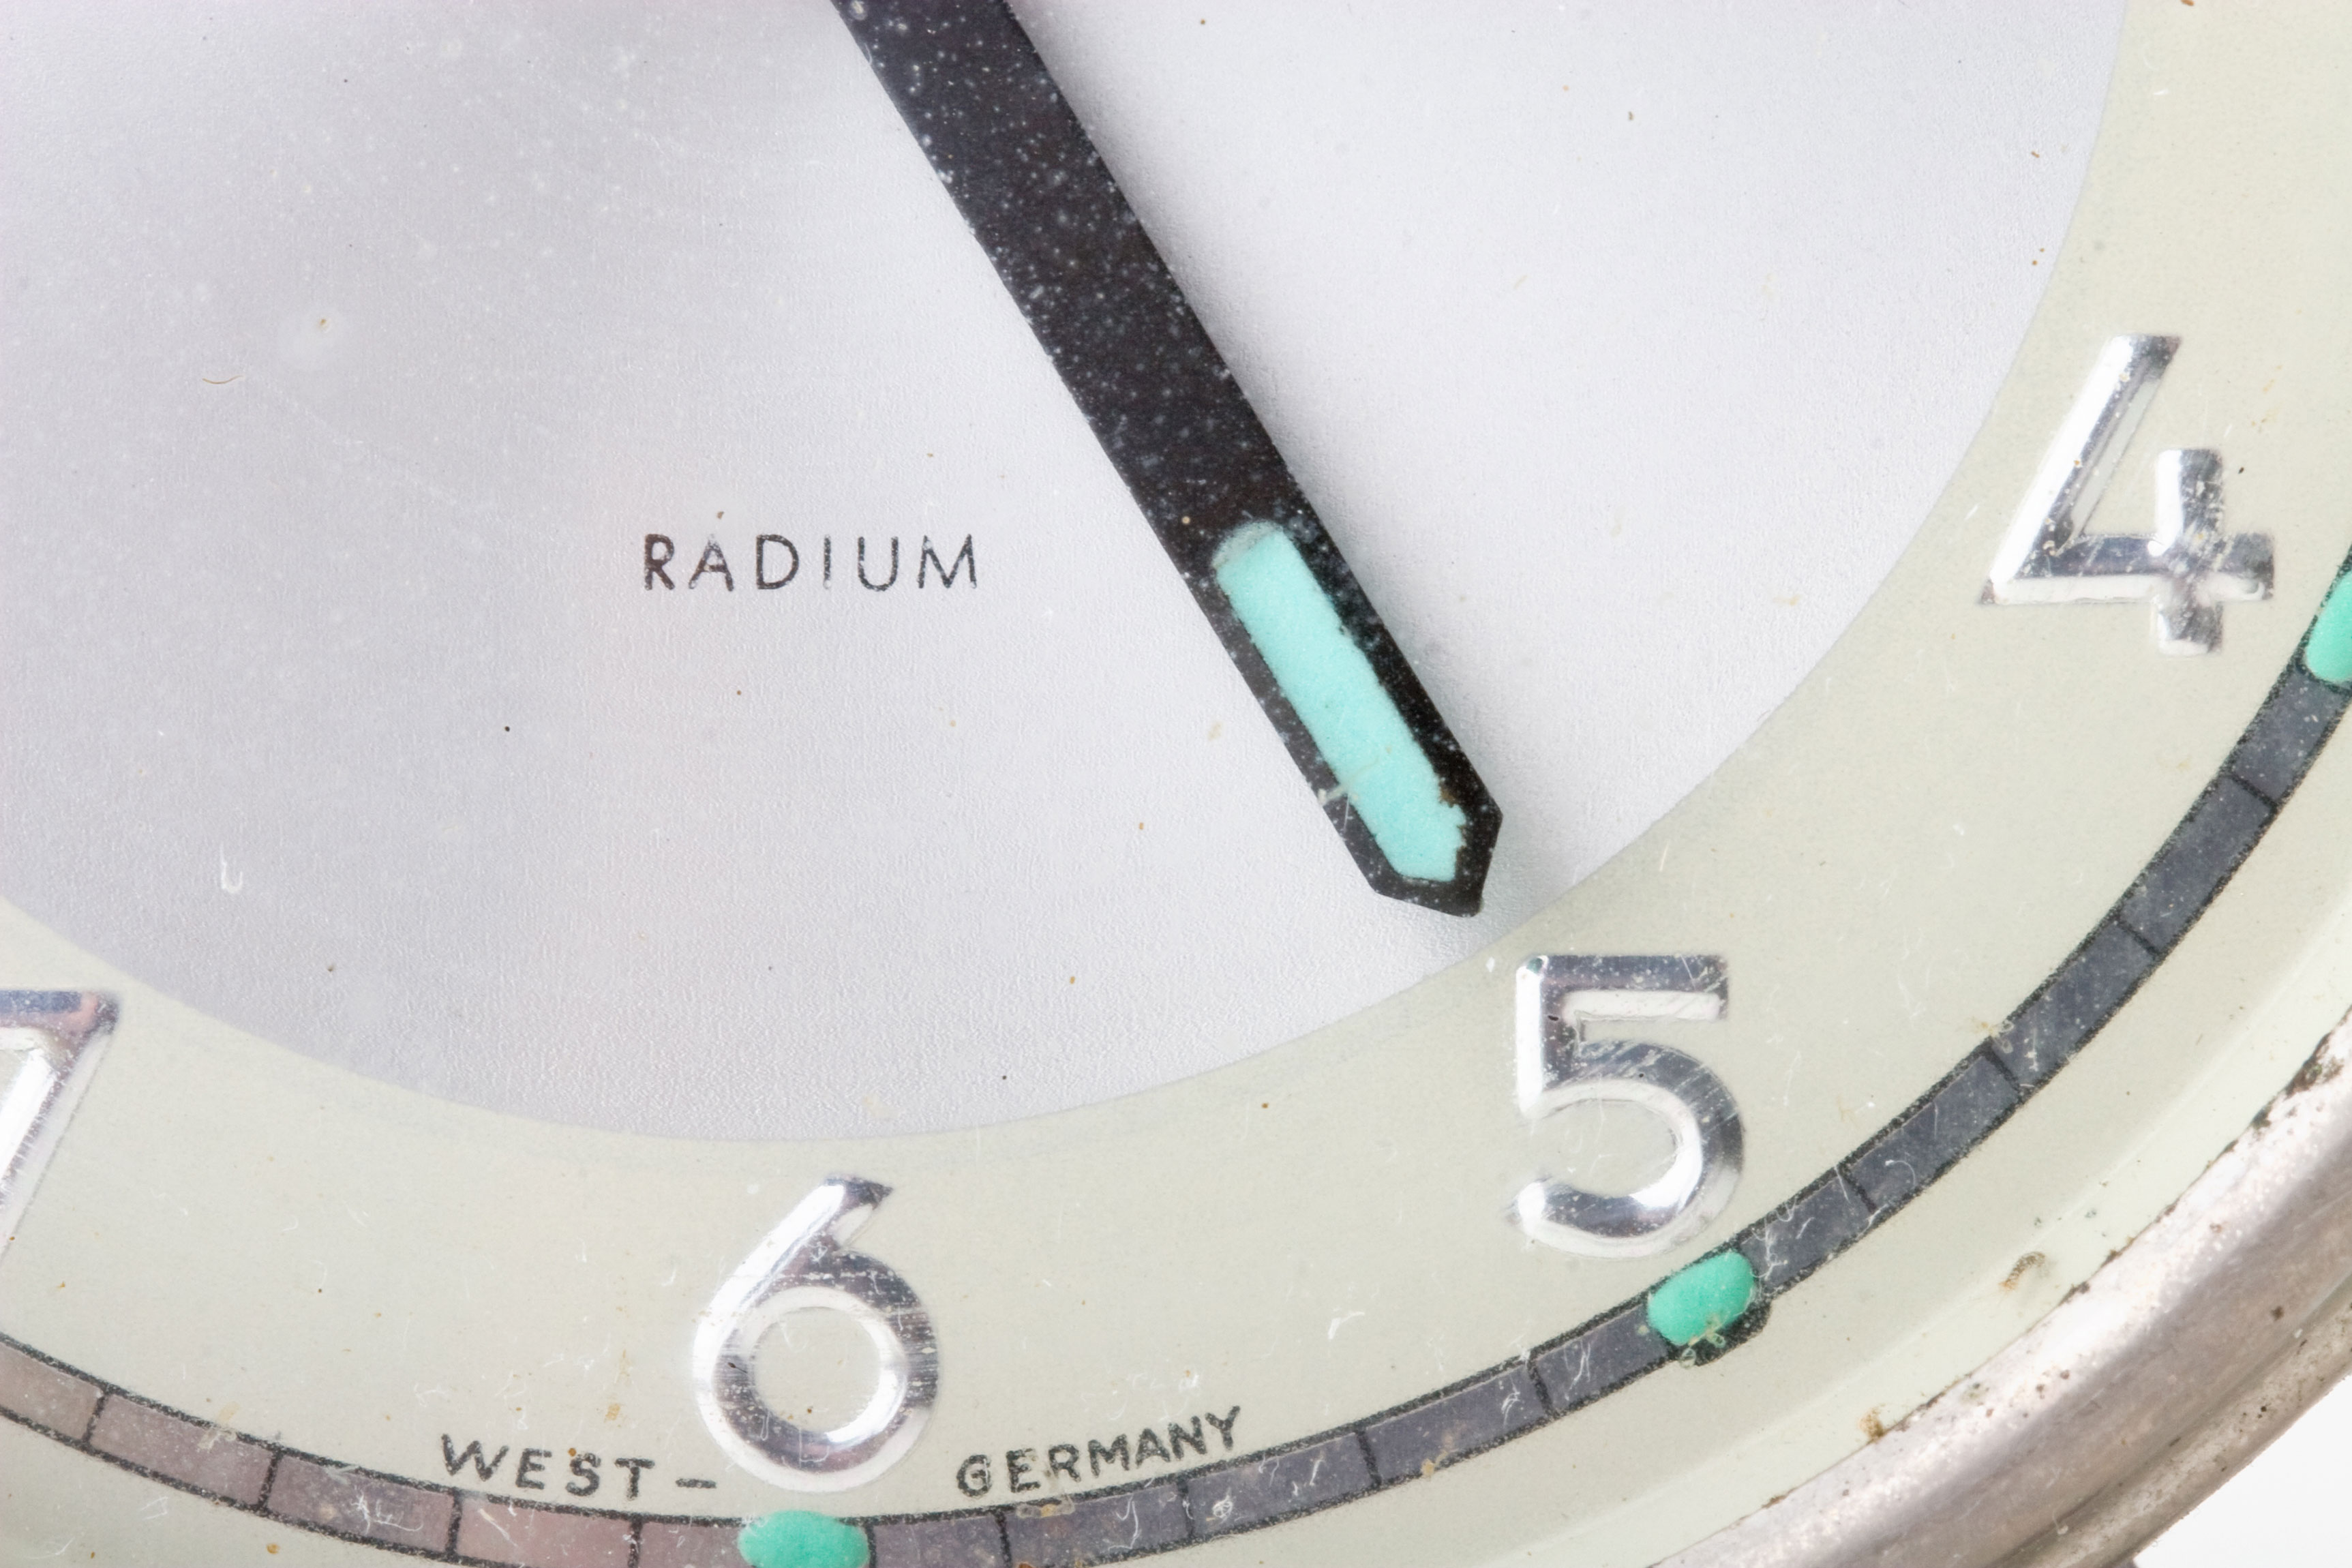 An old watch face with glow in the dark radium dials.